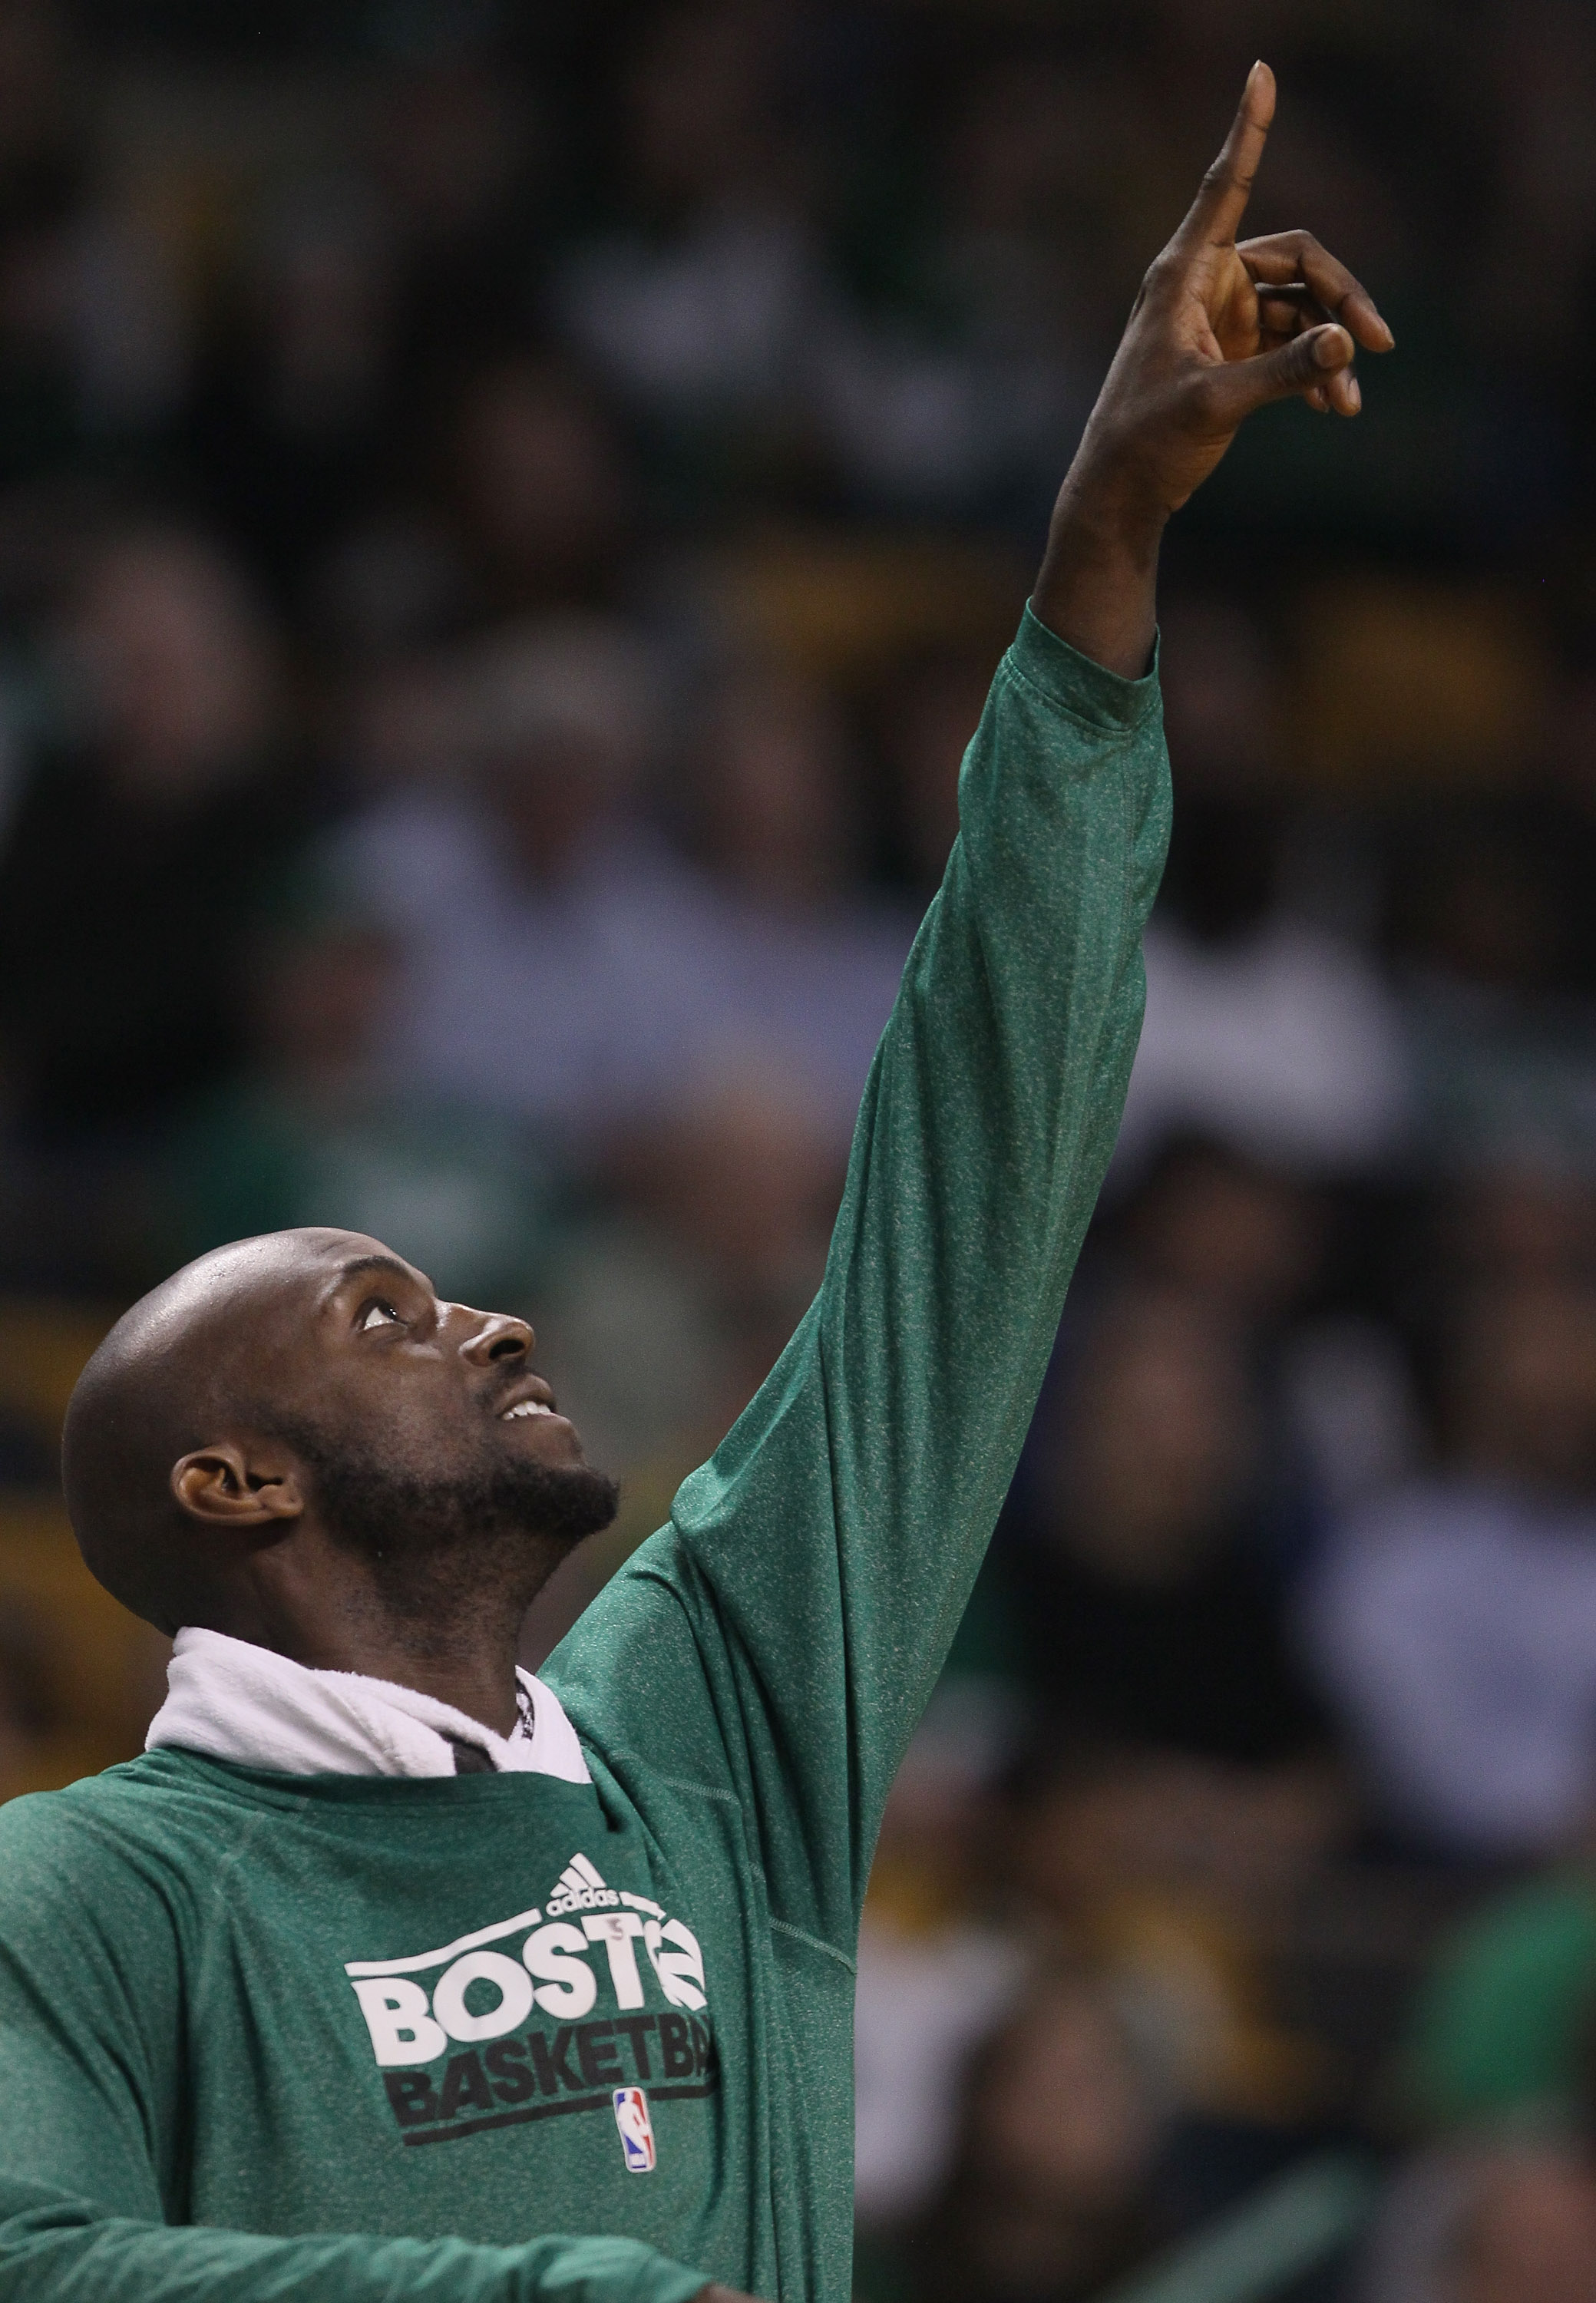 BOSTON, MA - MARCH 16:  Kevin Garnett #5 of the Boston Celtics celebrates the win over the Indiana Pacers on March 16, 2011 at the TD Garden in Boston, Massachusetts. The Celtics defeated the Indiana Pacers 92-80. NOTE TO USER: User expressly acknowledges